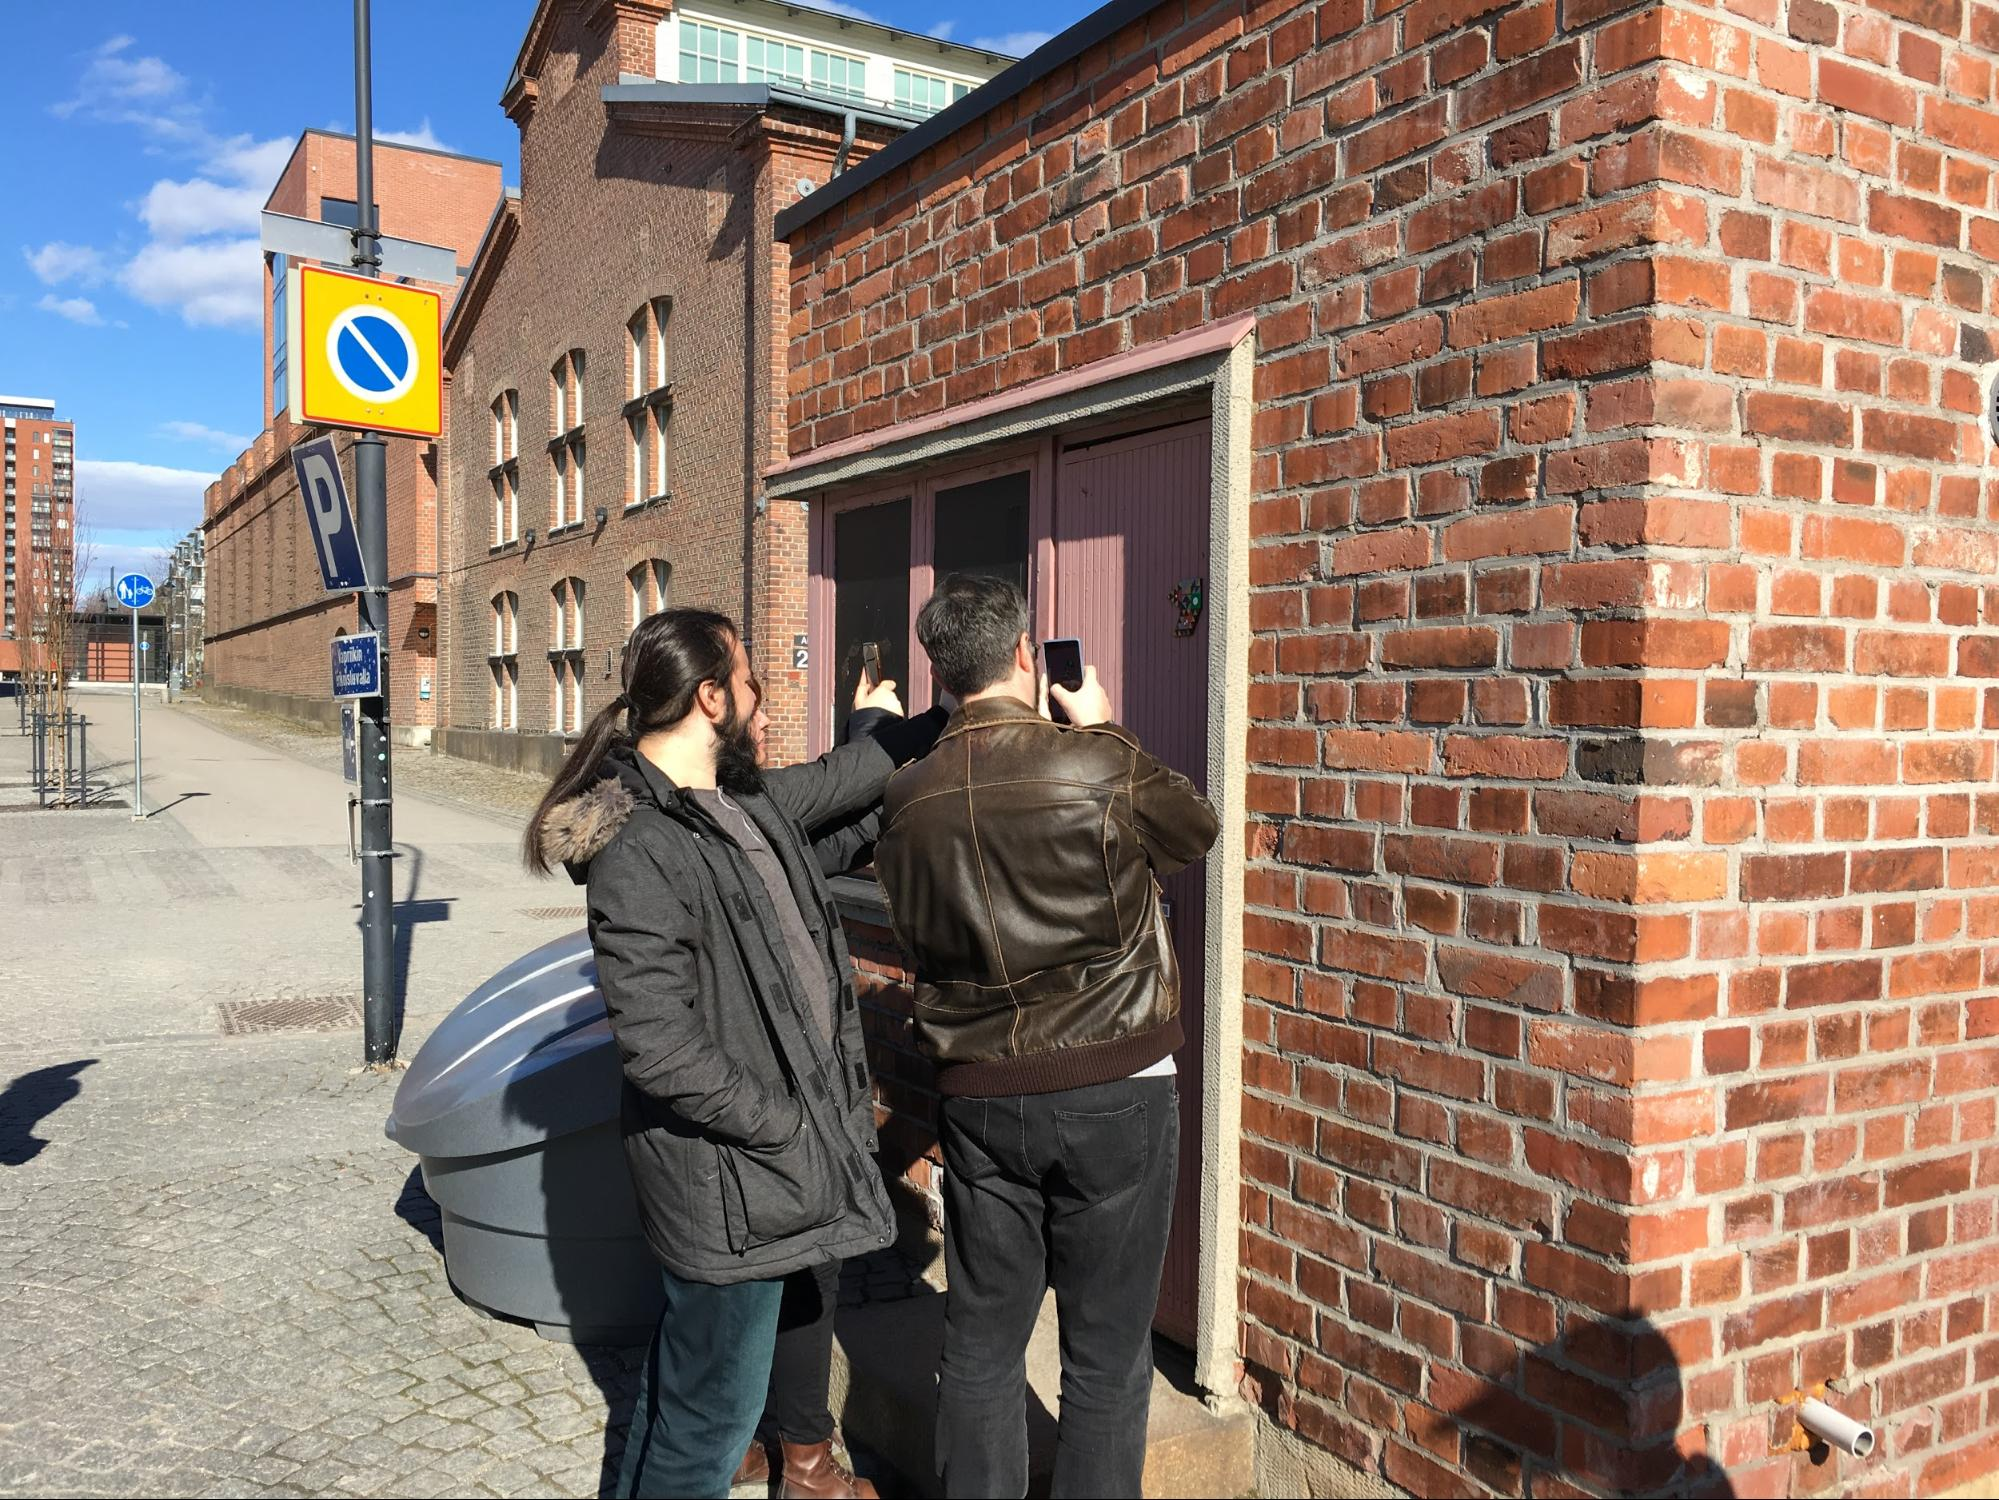 Walking tour participants scan the first code at Vapriikki museum